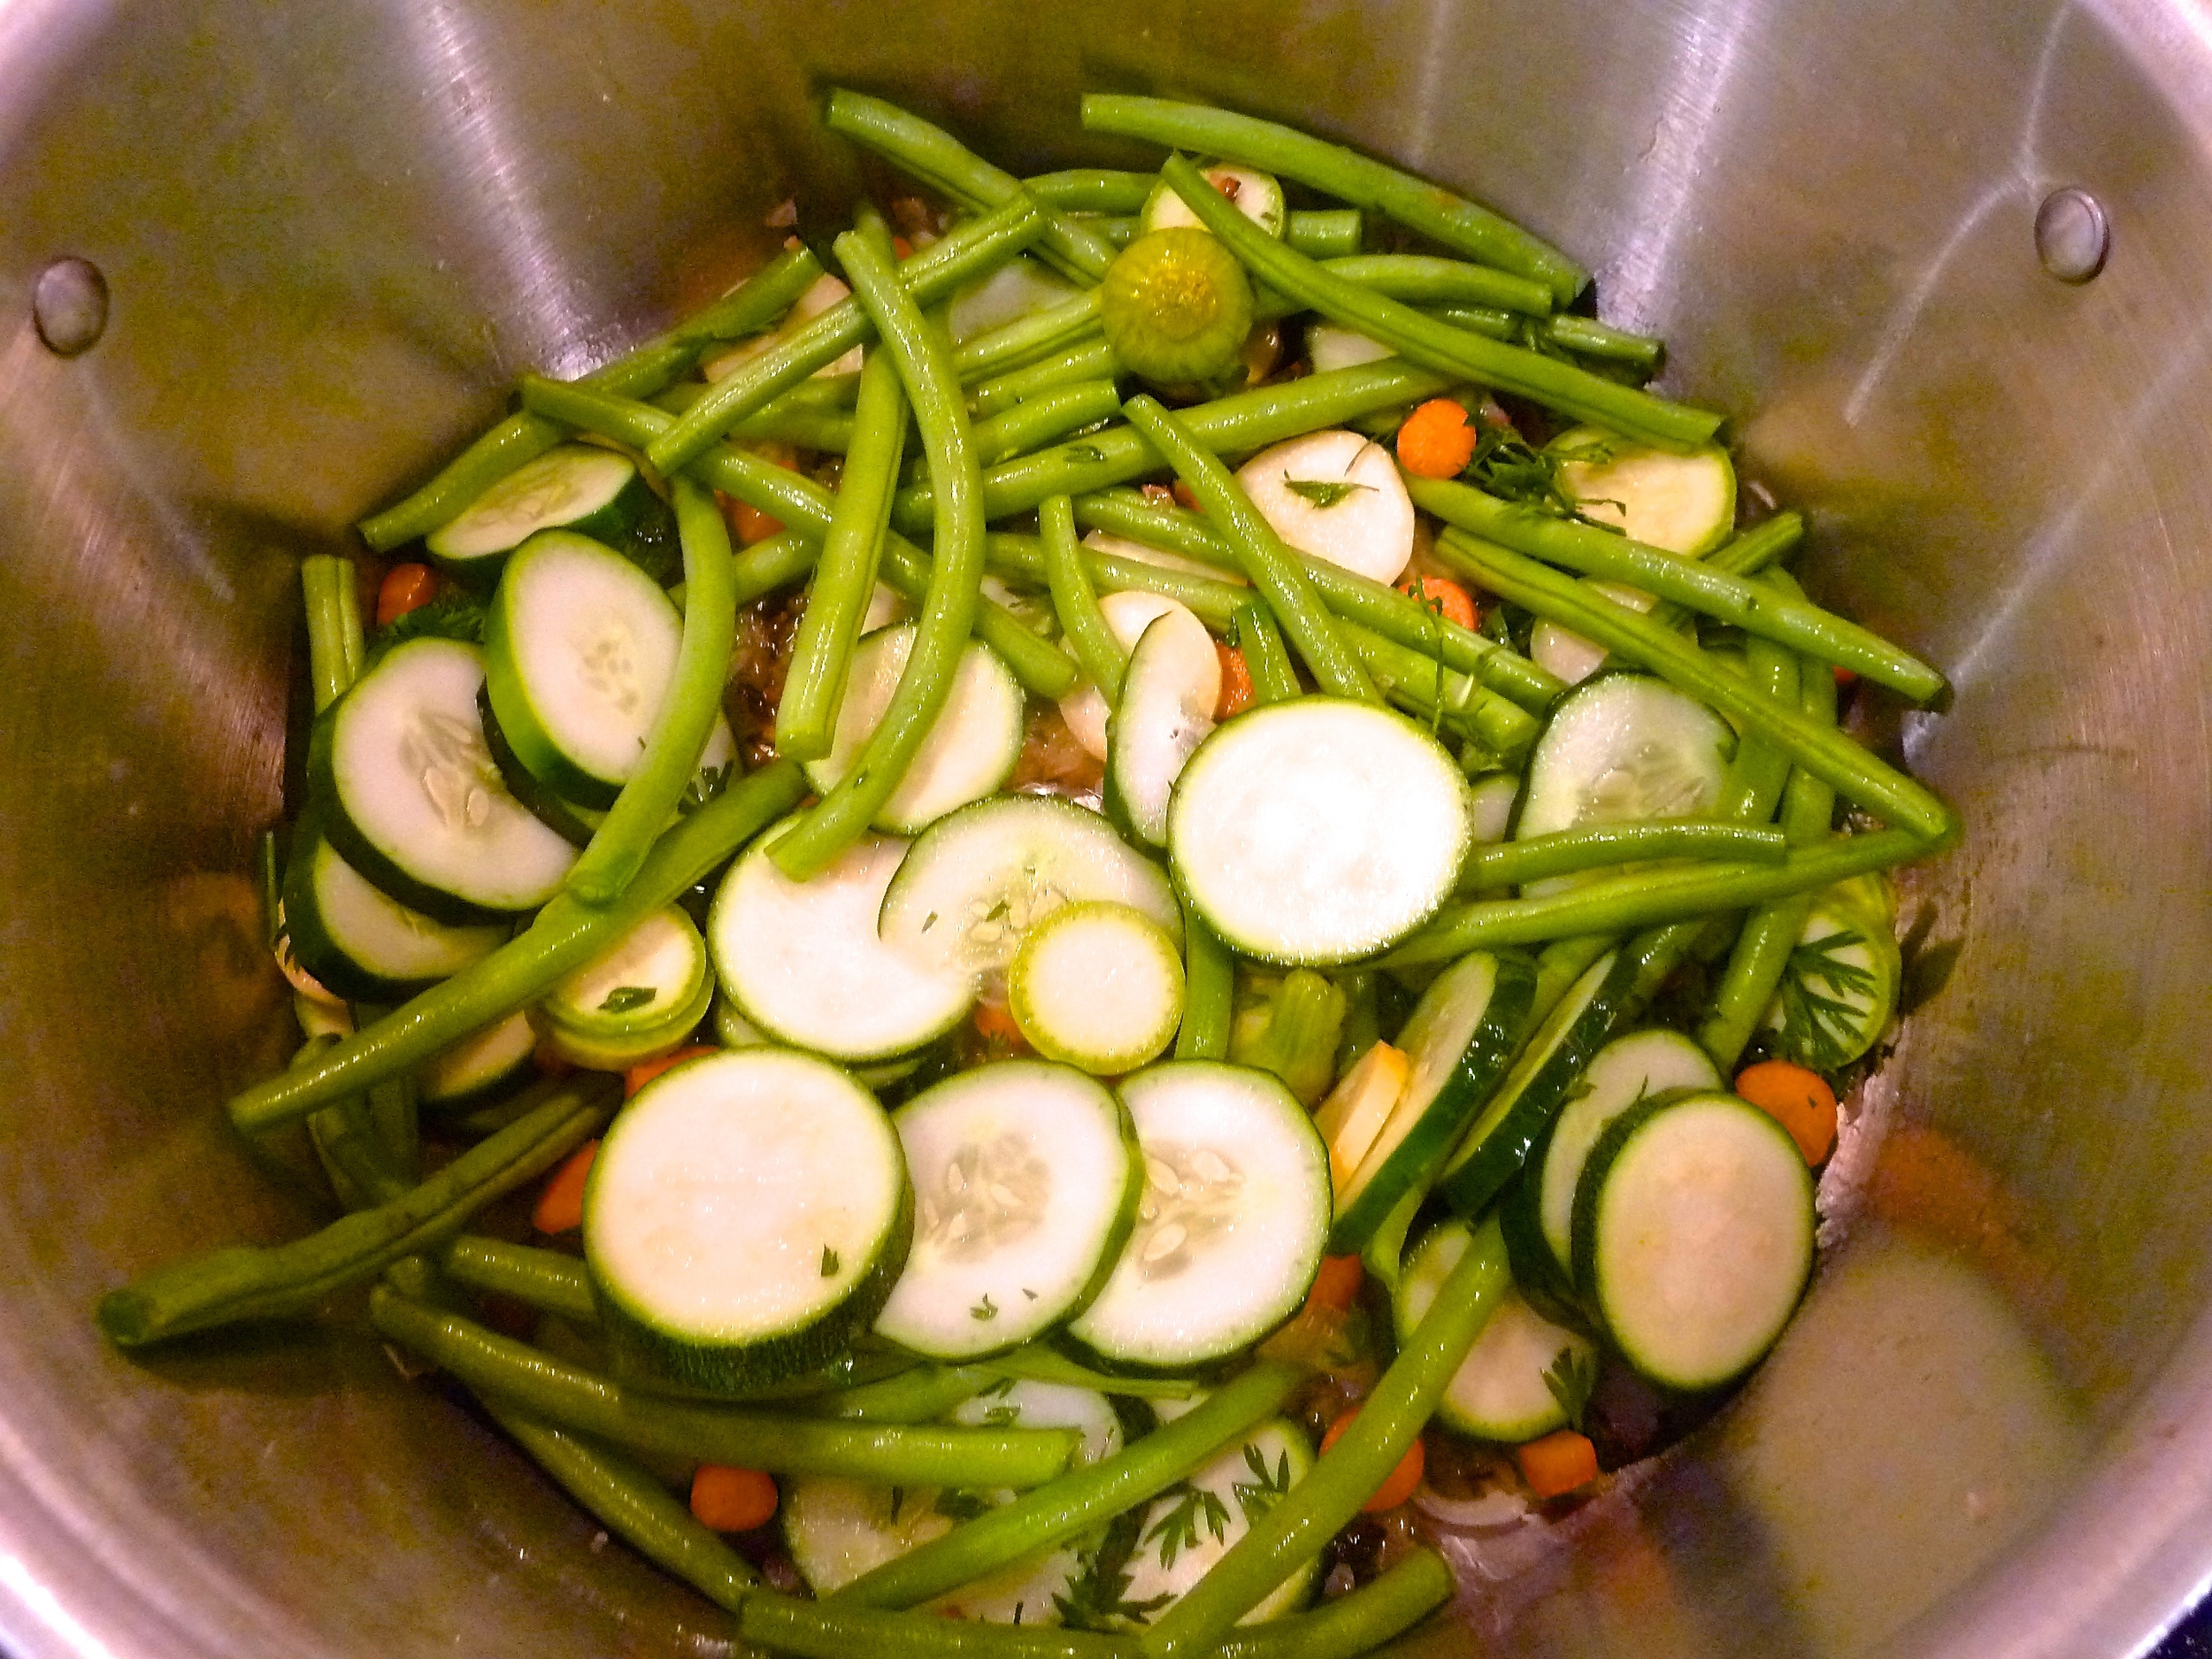 Dump all Veges In the Pot